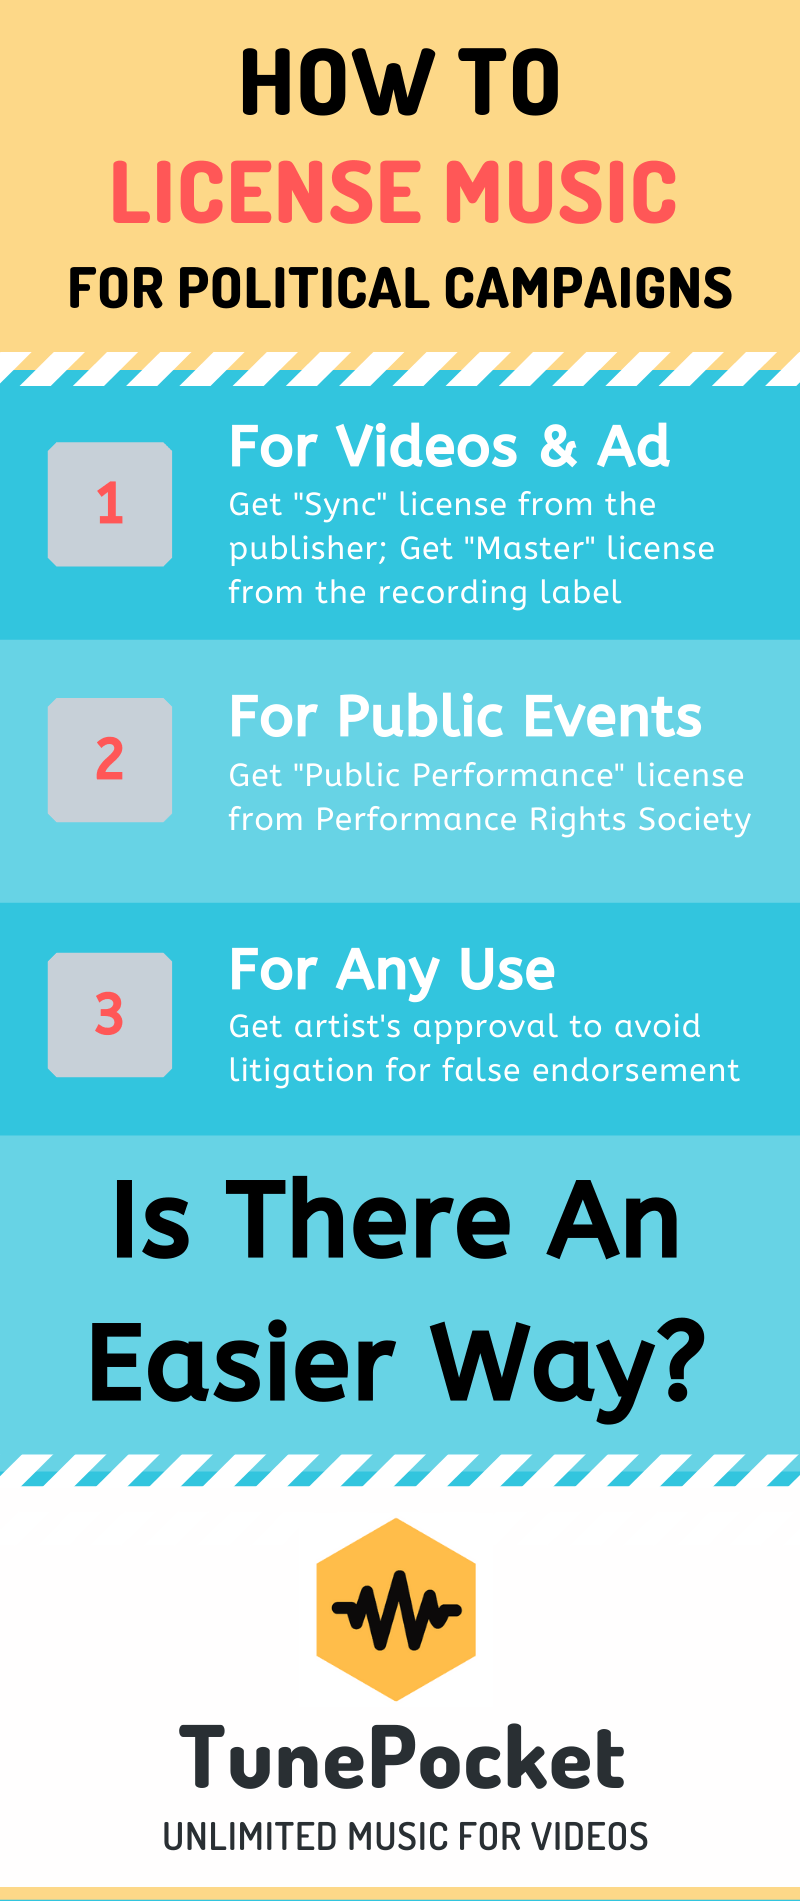 How to license music for political campaigns